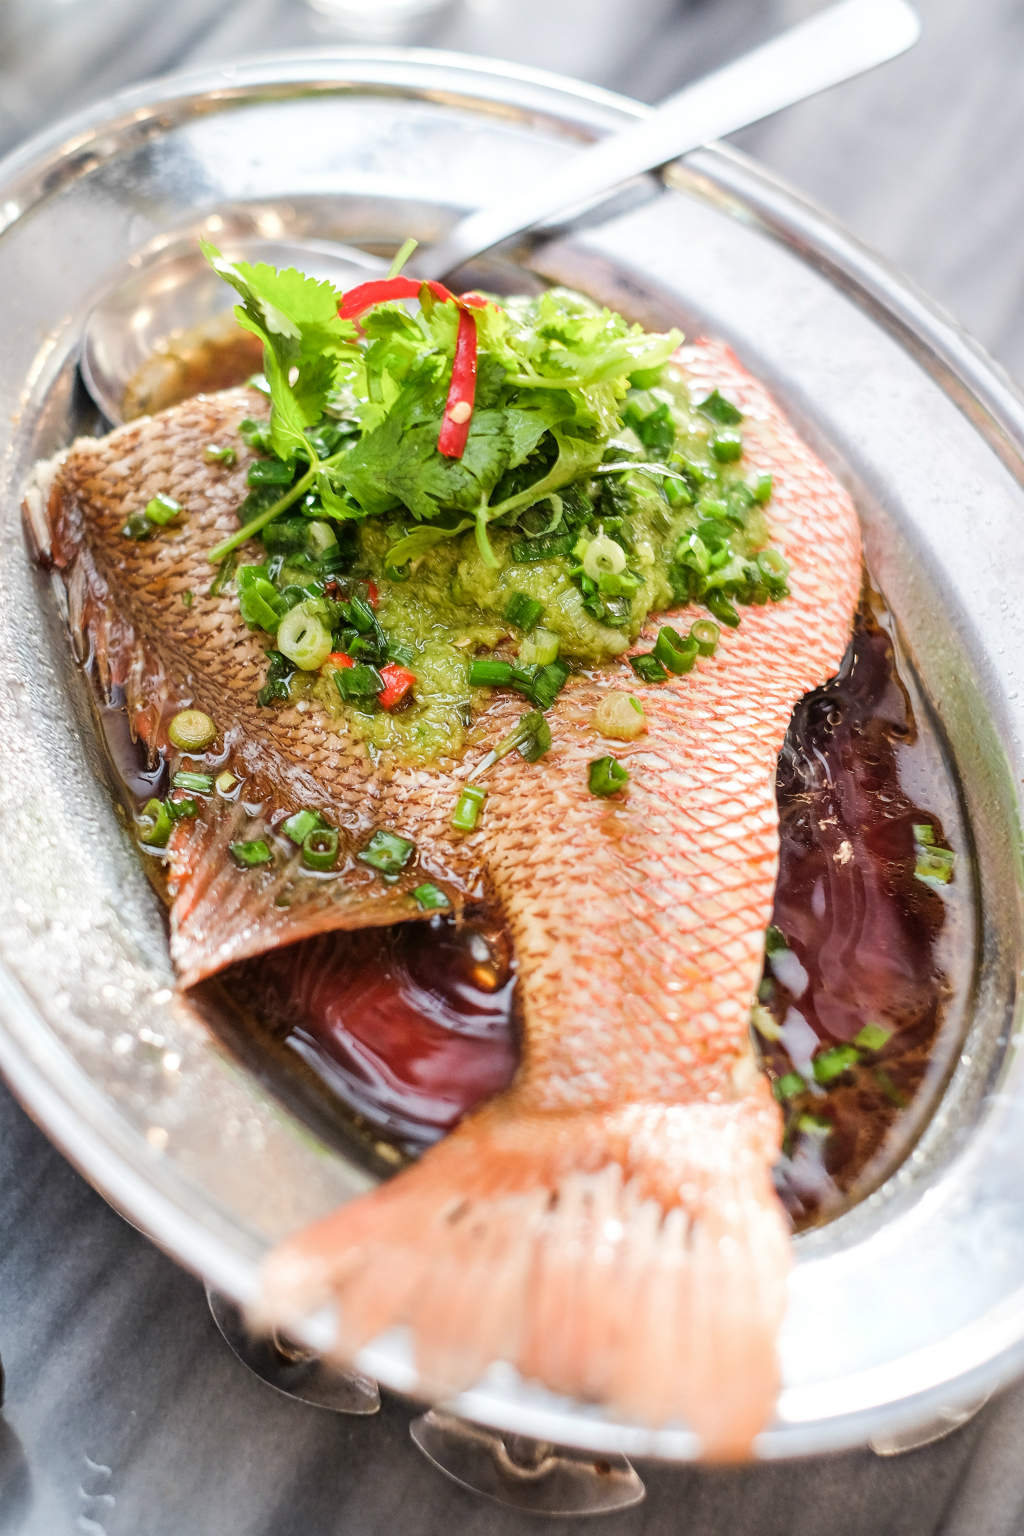 You Kee XO Restaurant (有记XO烧腊之家: Steamed Fish Tail